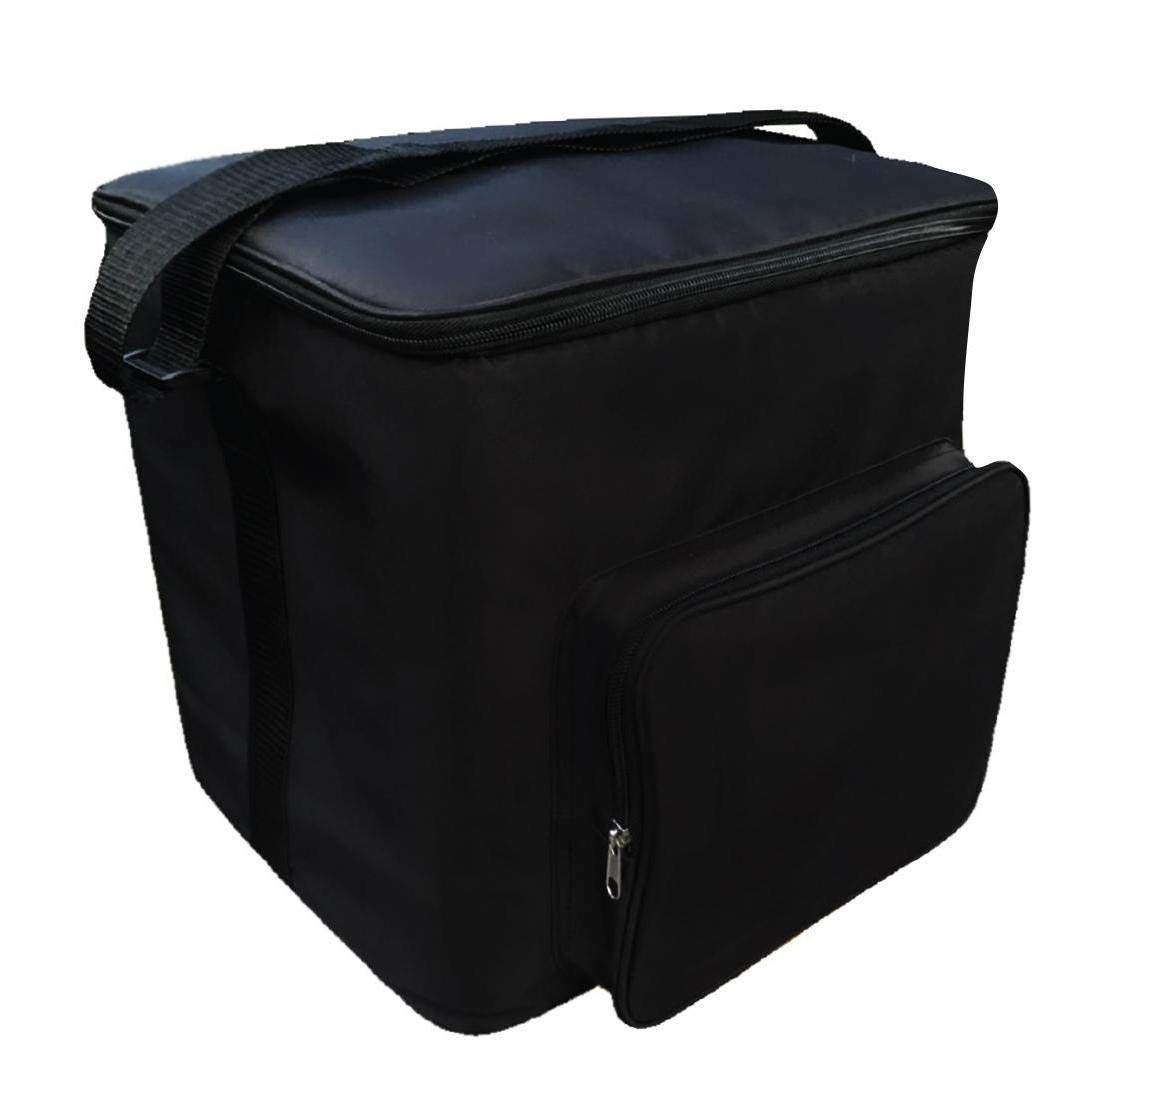 Two Lumps of Sugar Potluck Tote – Insulated Slow Cooker Carrier with Heat Resistant Interior and Optional Cooler Lining (Black)